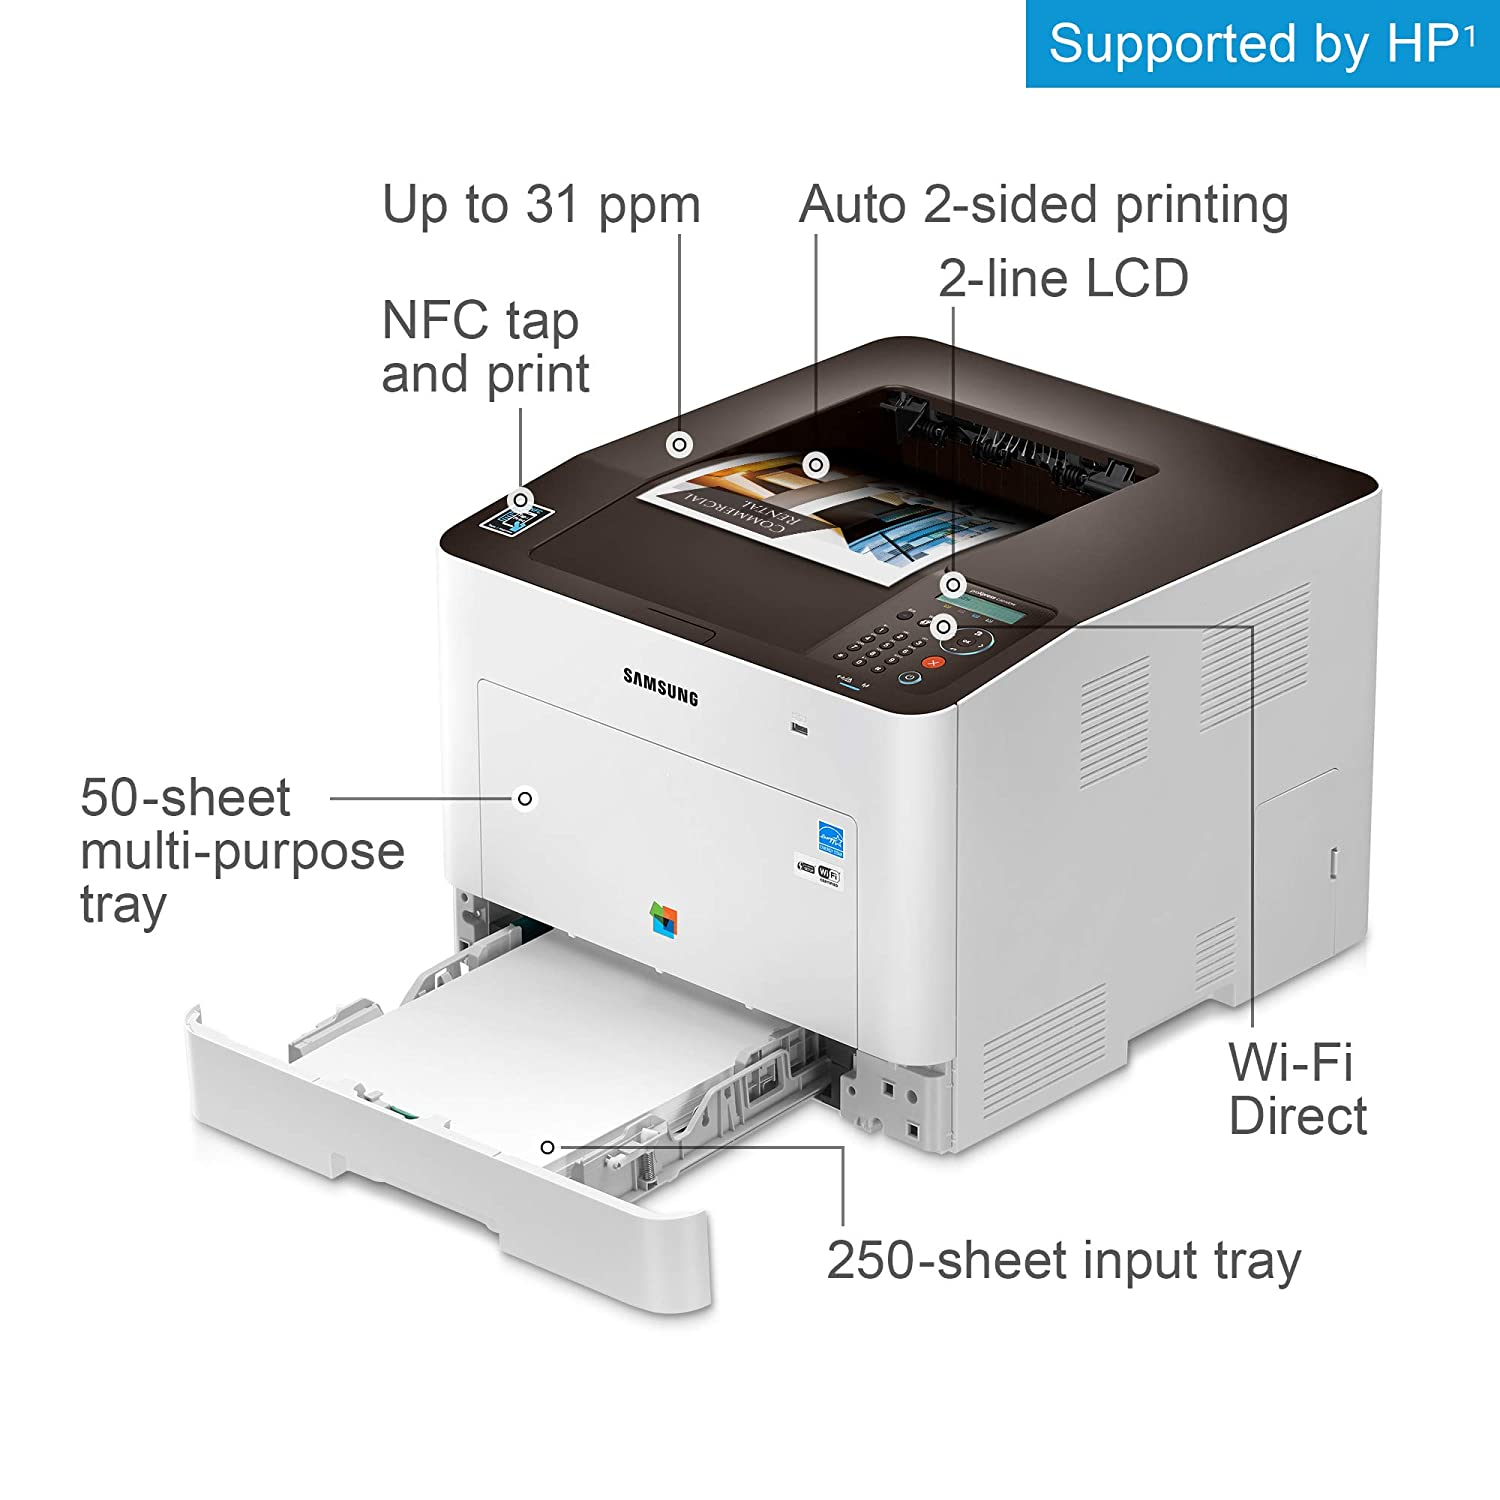 Samsung ProXpress C3010DW Wireless Color Laser Printer with Mobile  Connectivity, Duplex Printing, Print Security & Management Tools, Amazon  Dash